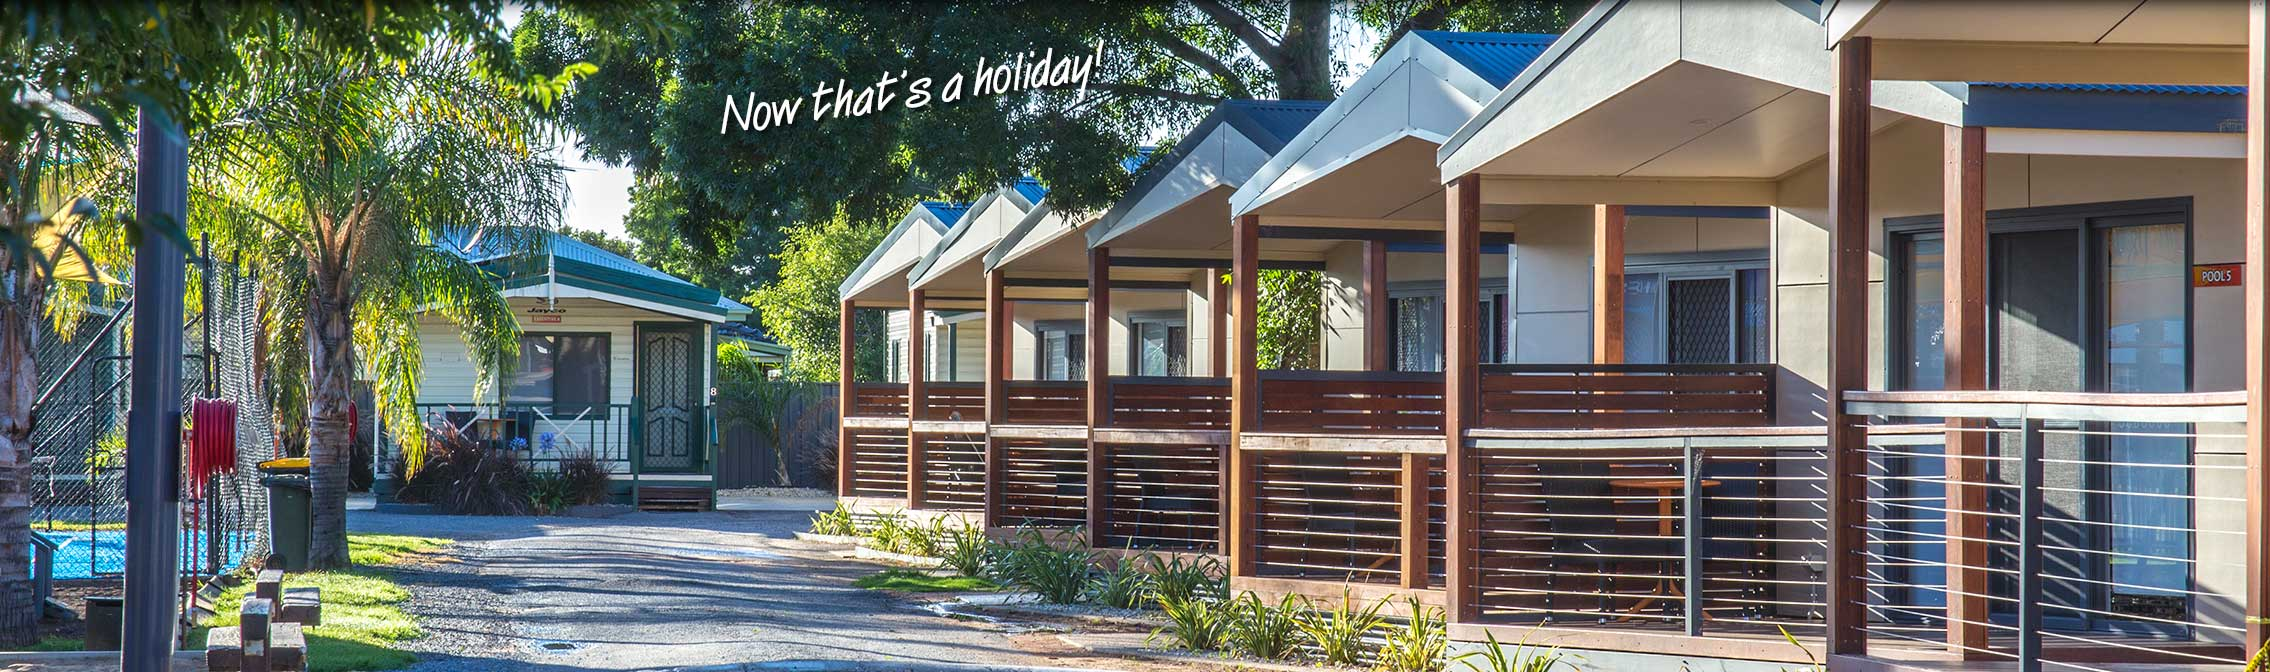 Cabin accommodation at All Seasons Holiday Park Mildura